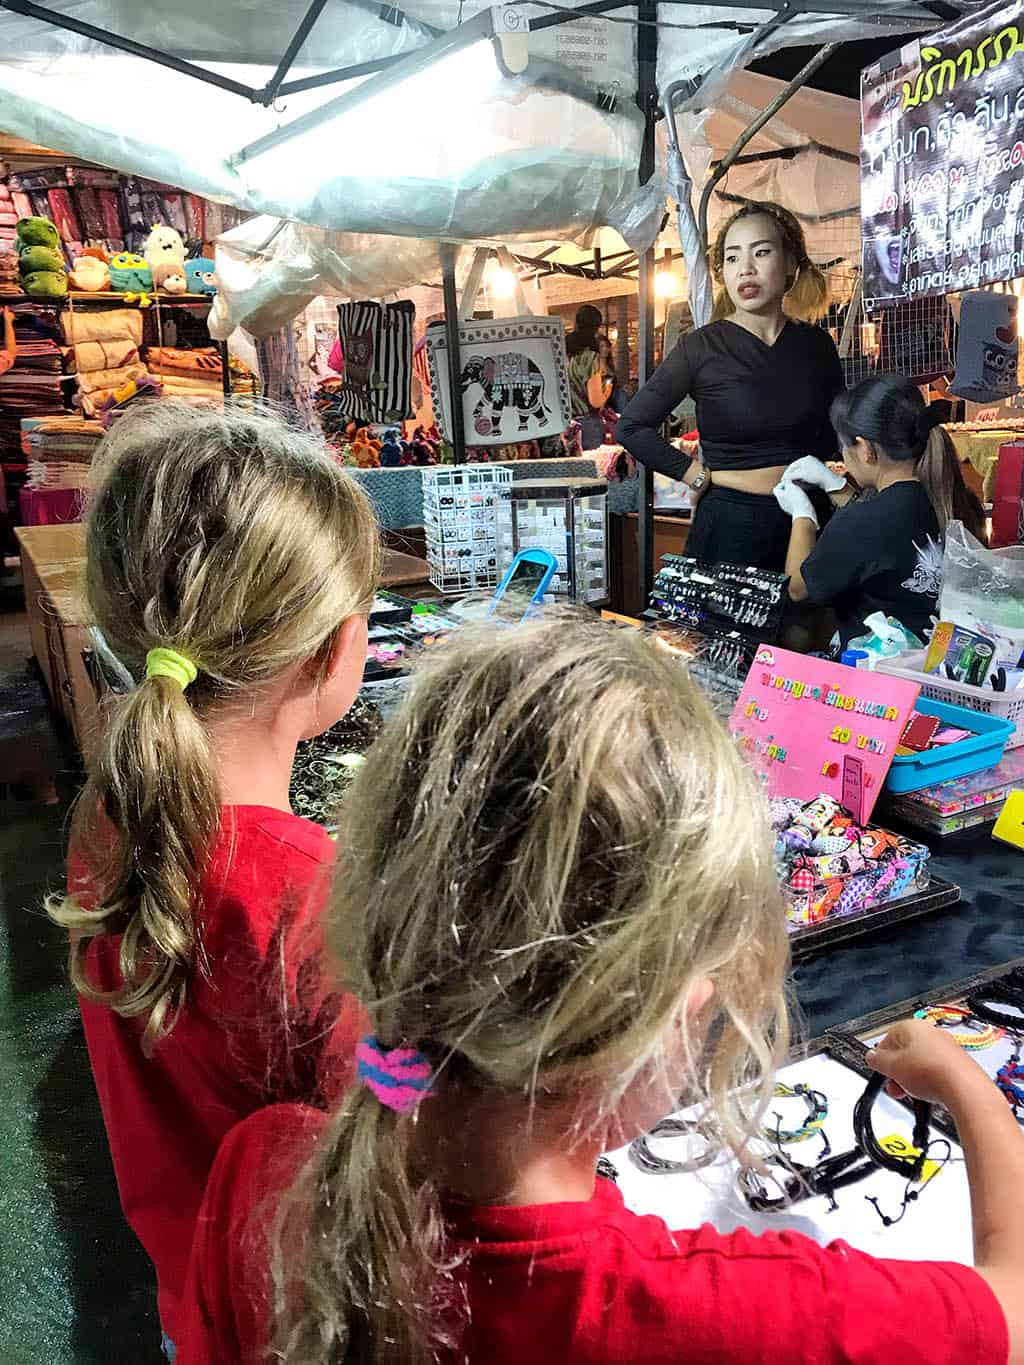 visiting chaing rai night market - one of the things to do in Chaing Rai with kids